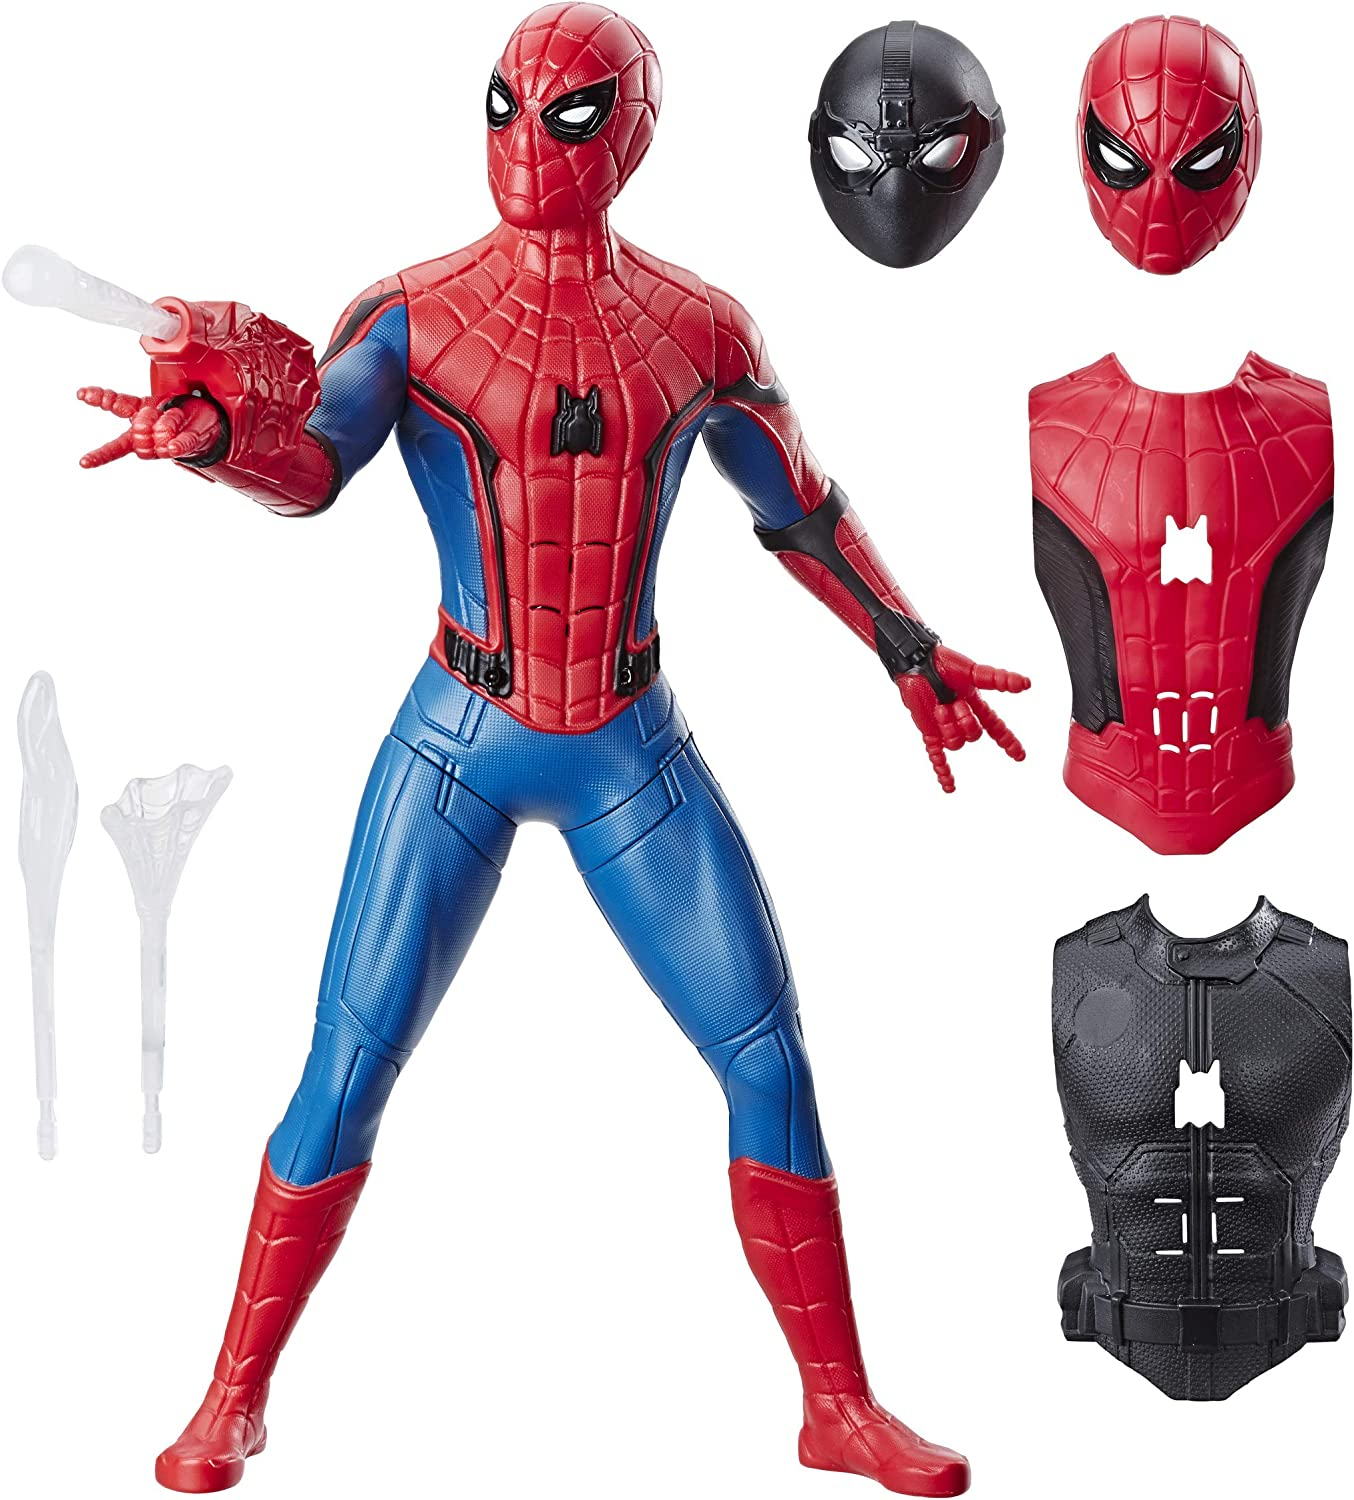 Spider-Man: Far from Home Deluxe 13-Inch-Scale Web Gear Action Figure with Sound FX, Suit Upgrades, and Web Blaster Accessory